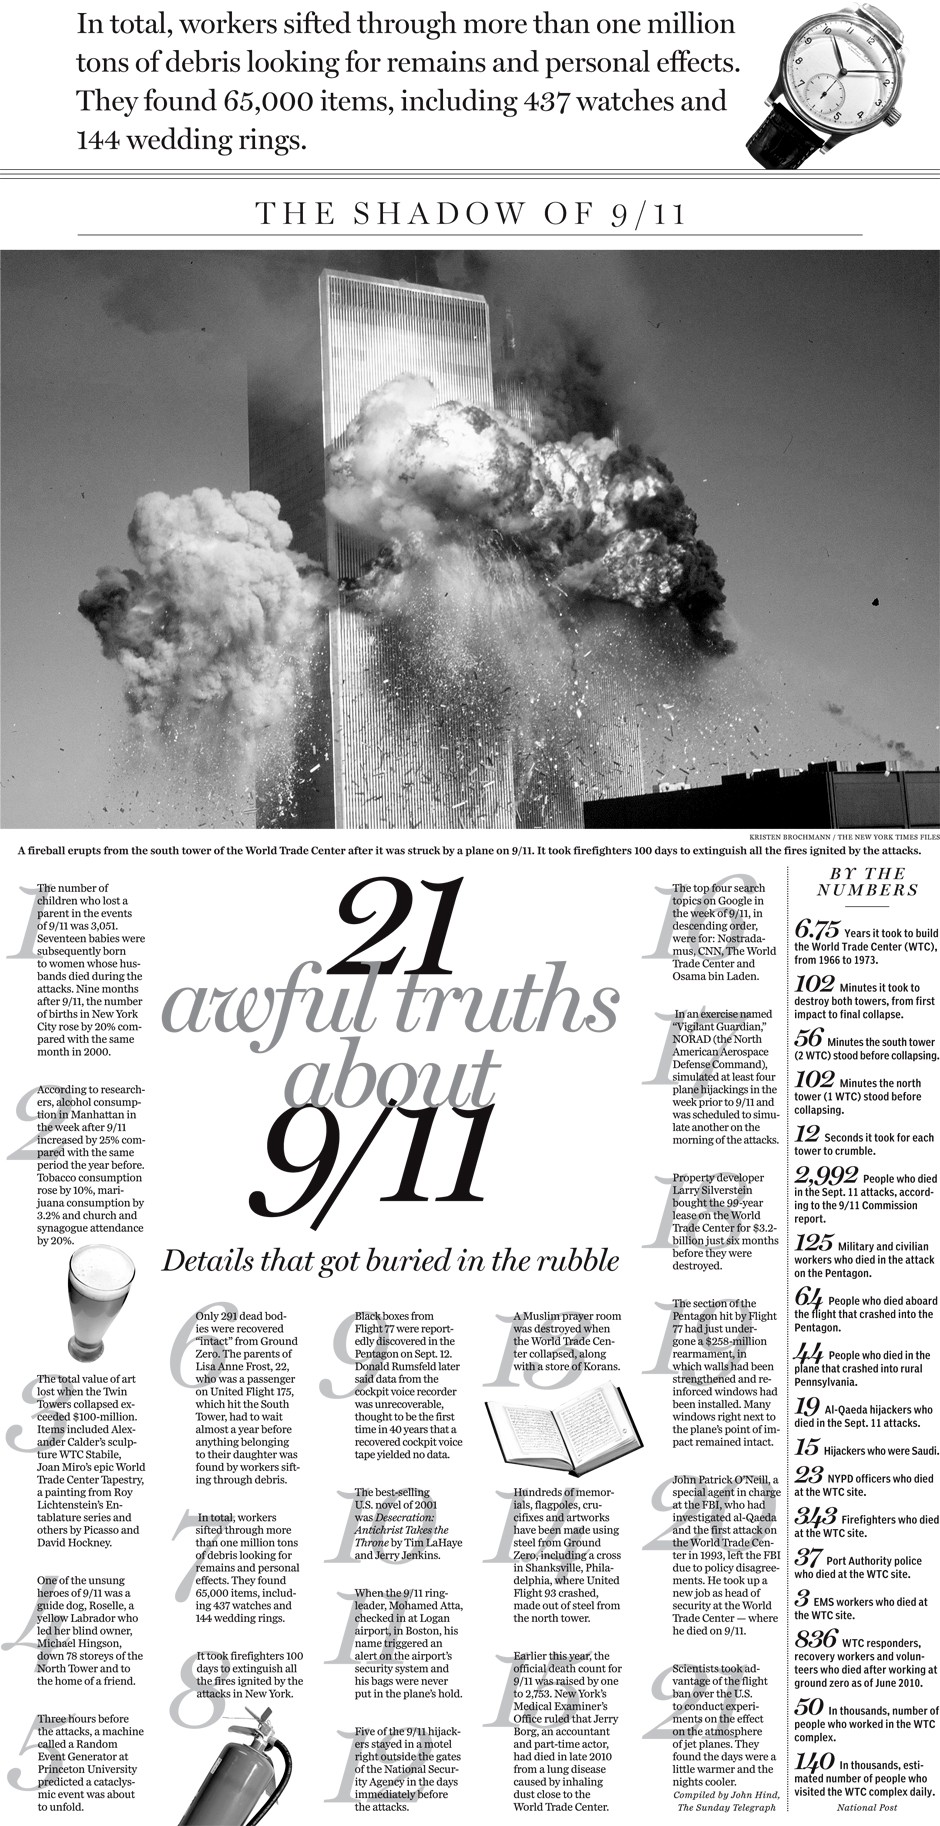 Awful Truths About 9/11 2001